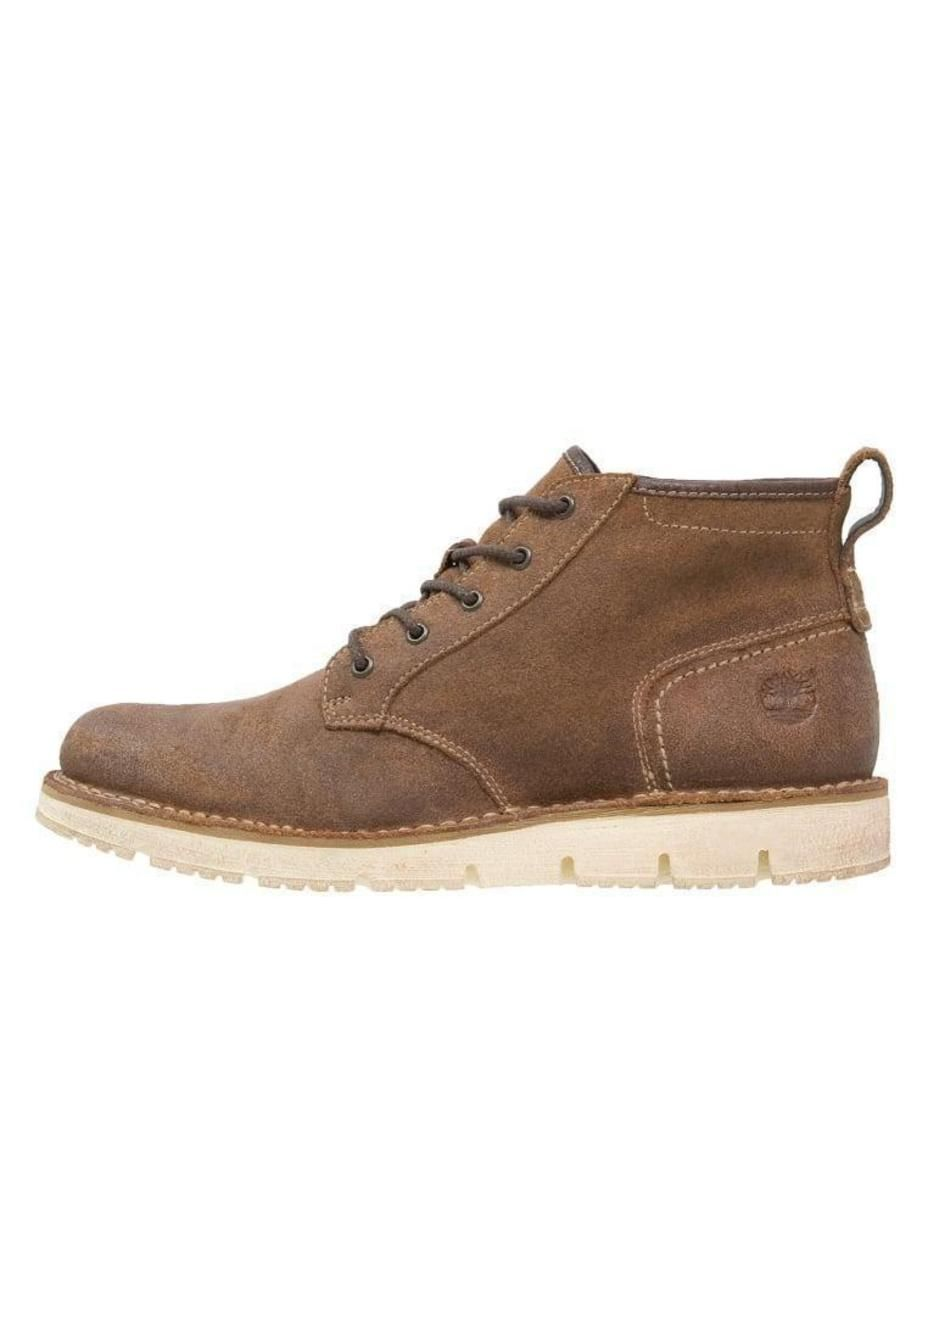 a2c0ce280e23 WESTMORE - Lace-up boots - cocoa brown http   picvpic.com